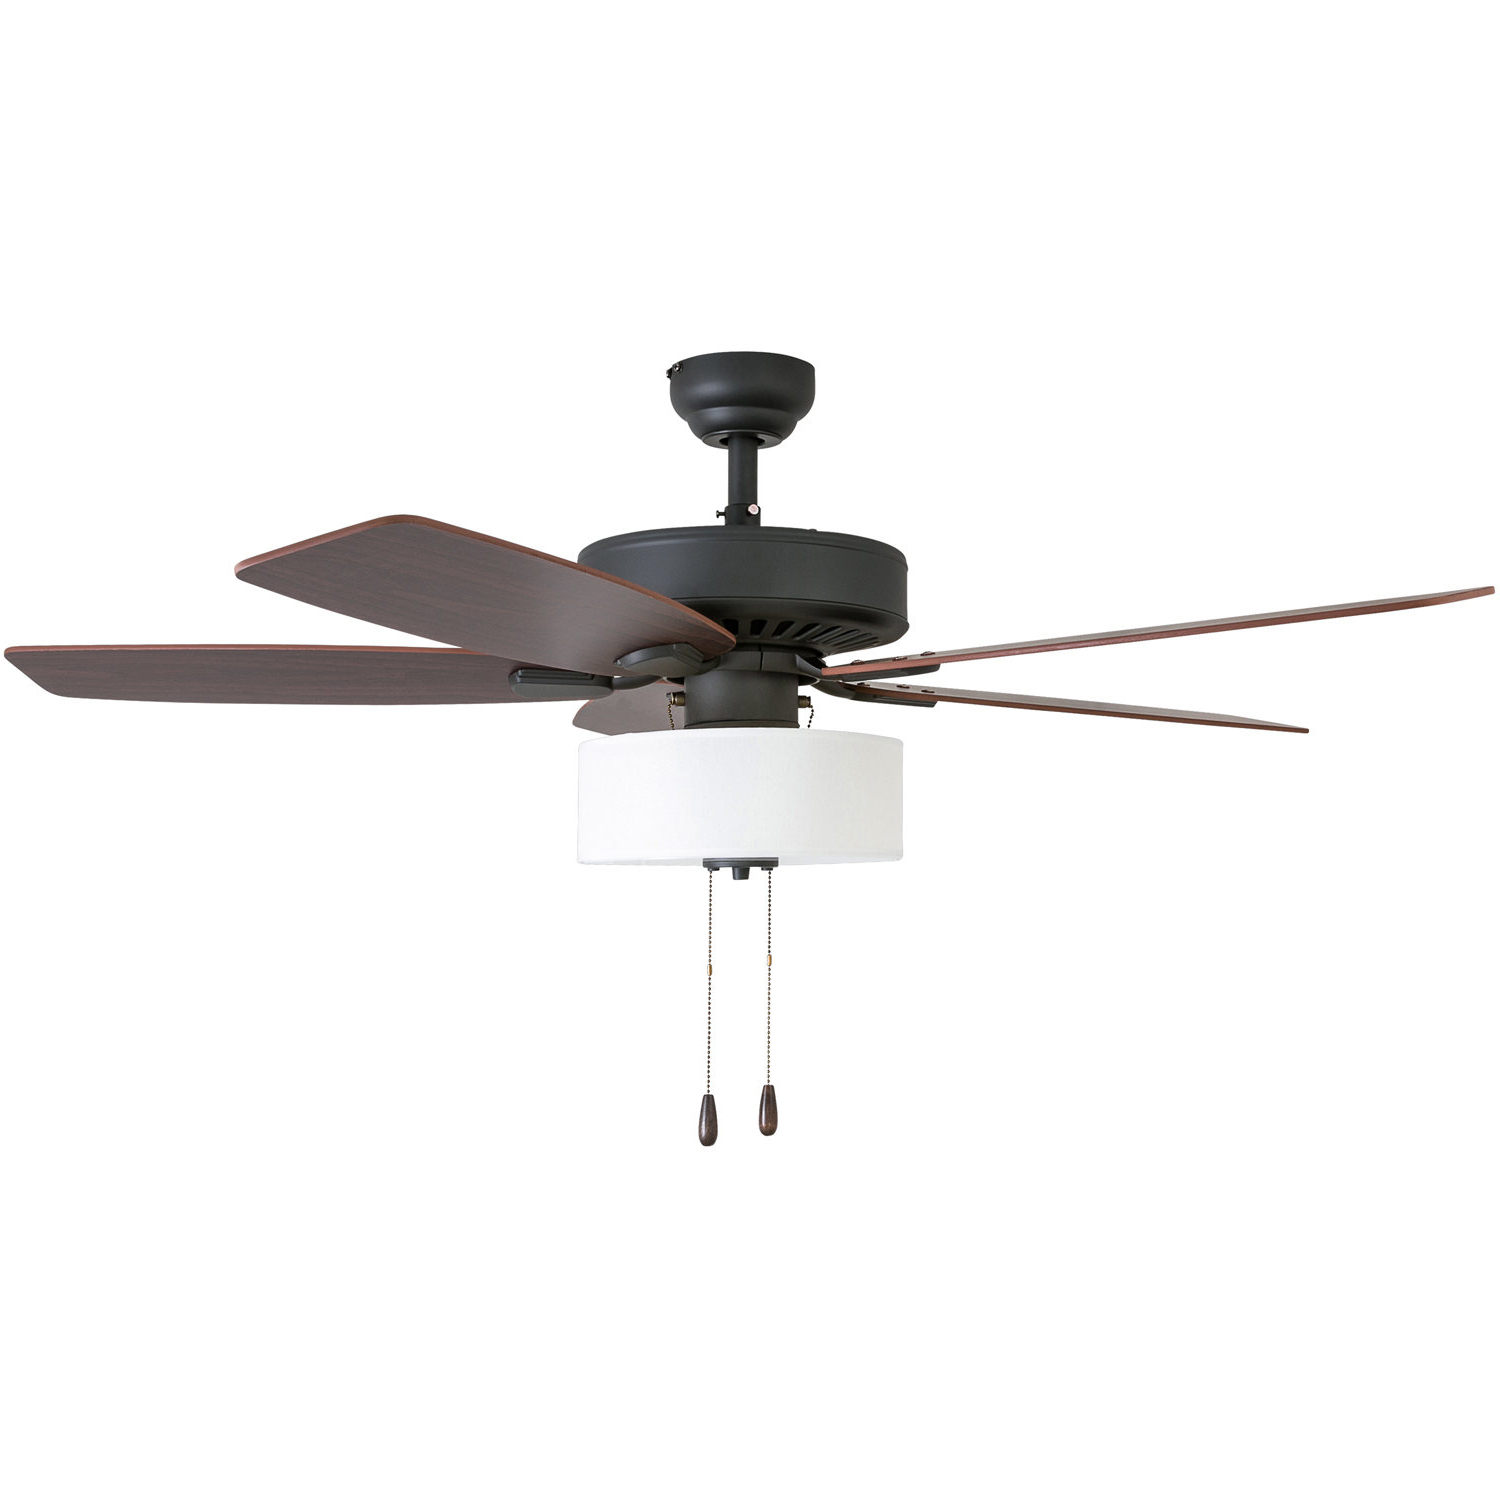 "Glenpool 5 Blade Ceiling Fans For Popular 52"" Sybilla 5 Blade Ceiling Fan, Light Kit Included (View 12 of 20)"